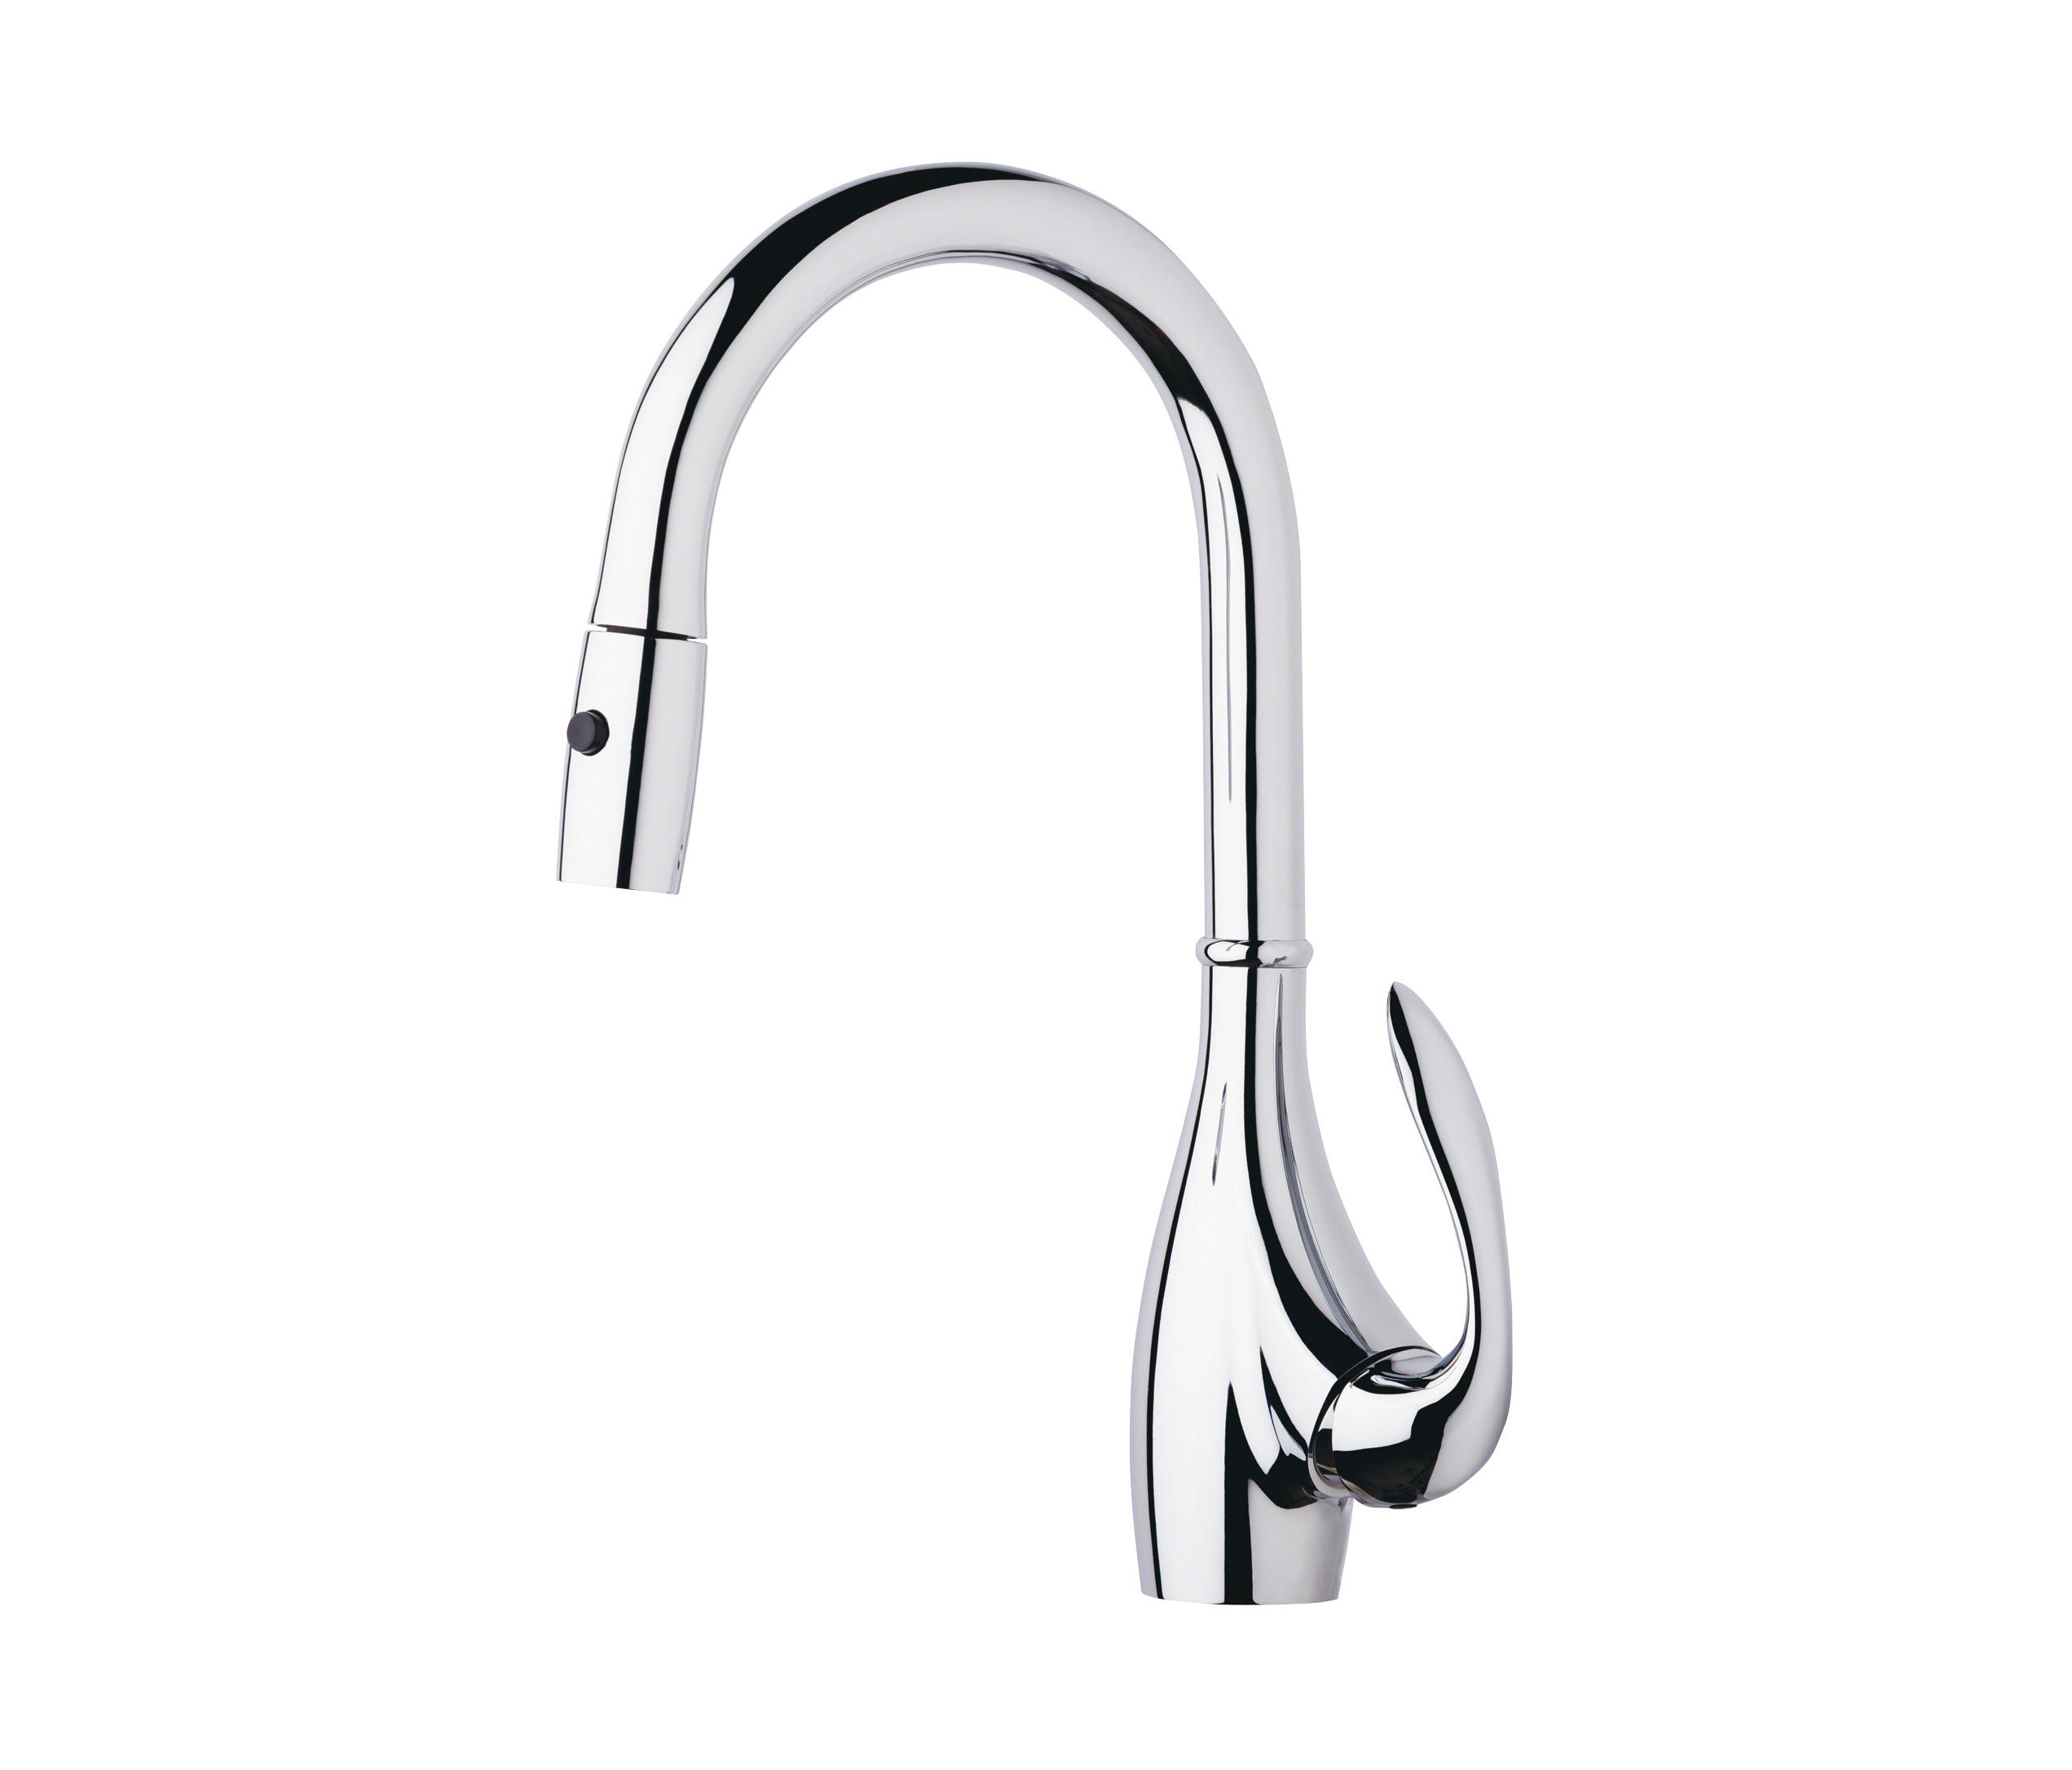 bellefleur single handle pull down kitchen faucet 175gpm by danze - Danze Kitchen Faucets